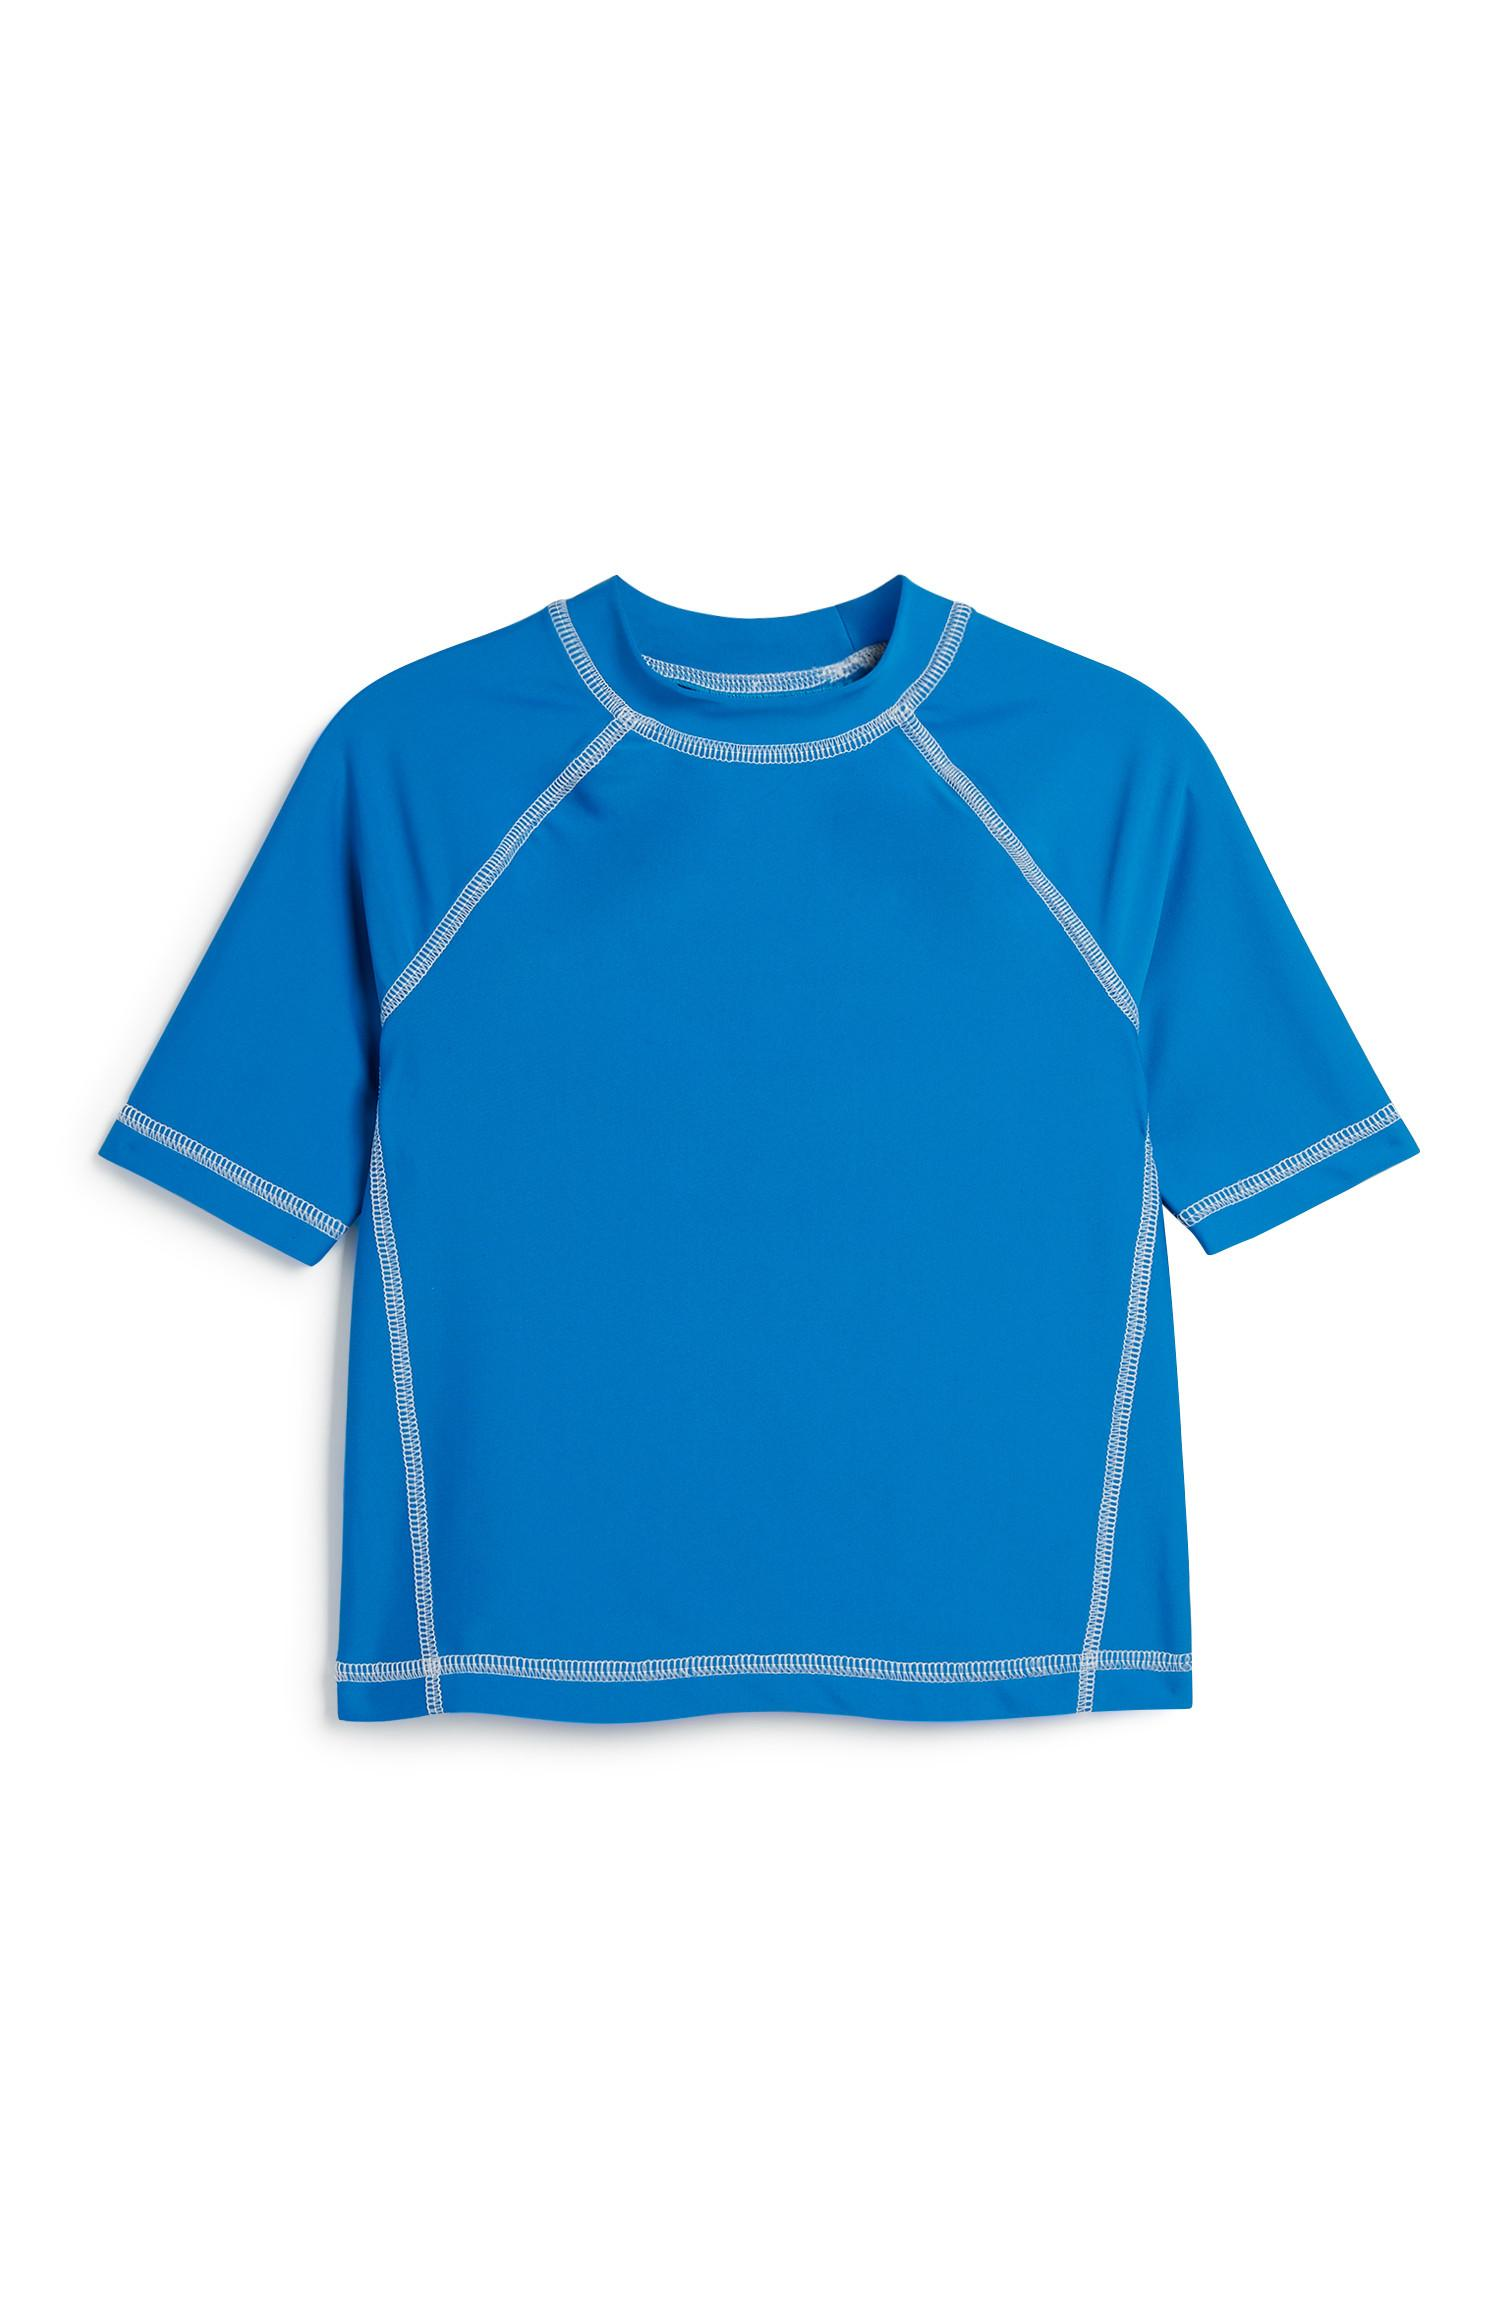 Younger Boy Sunsafe Top